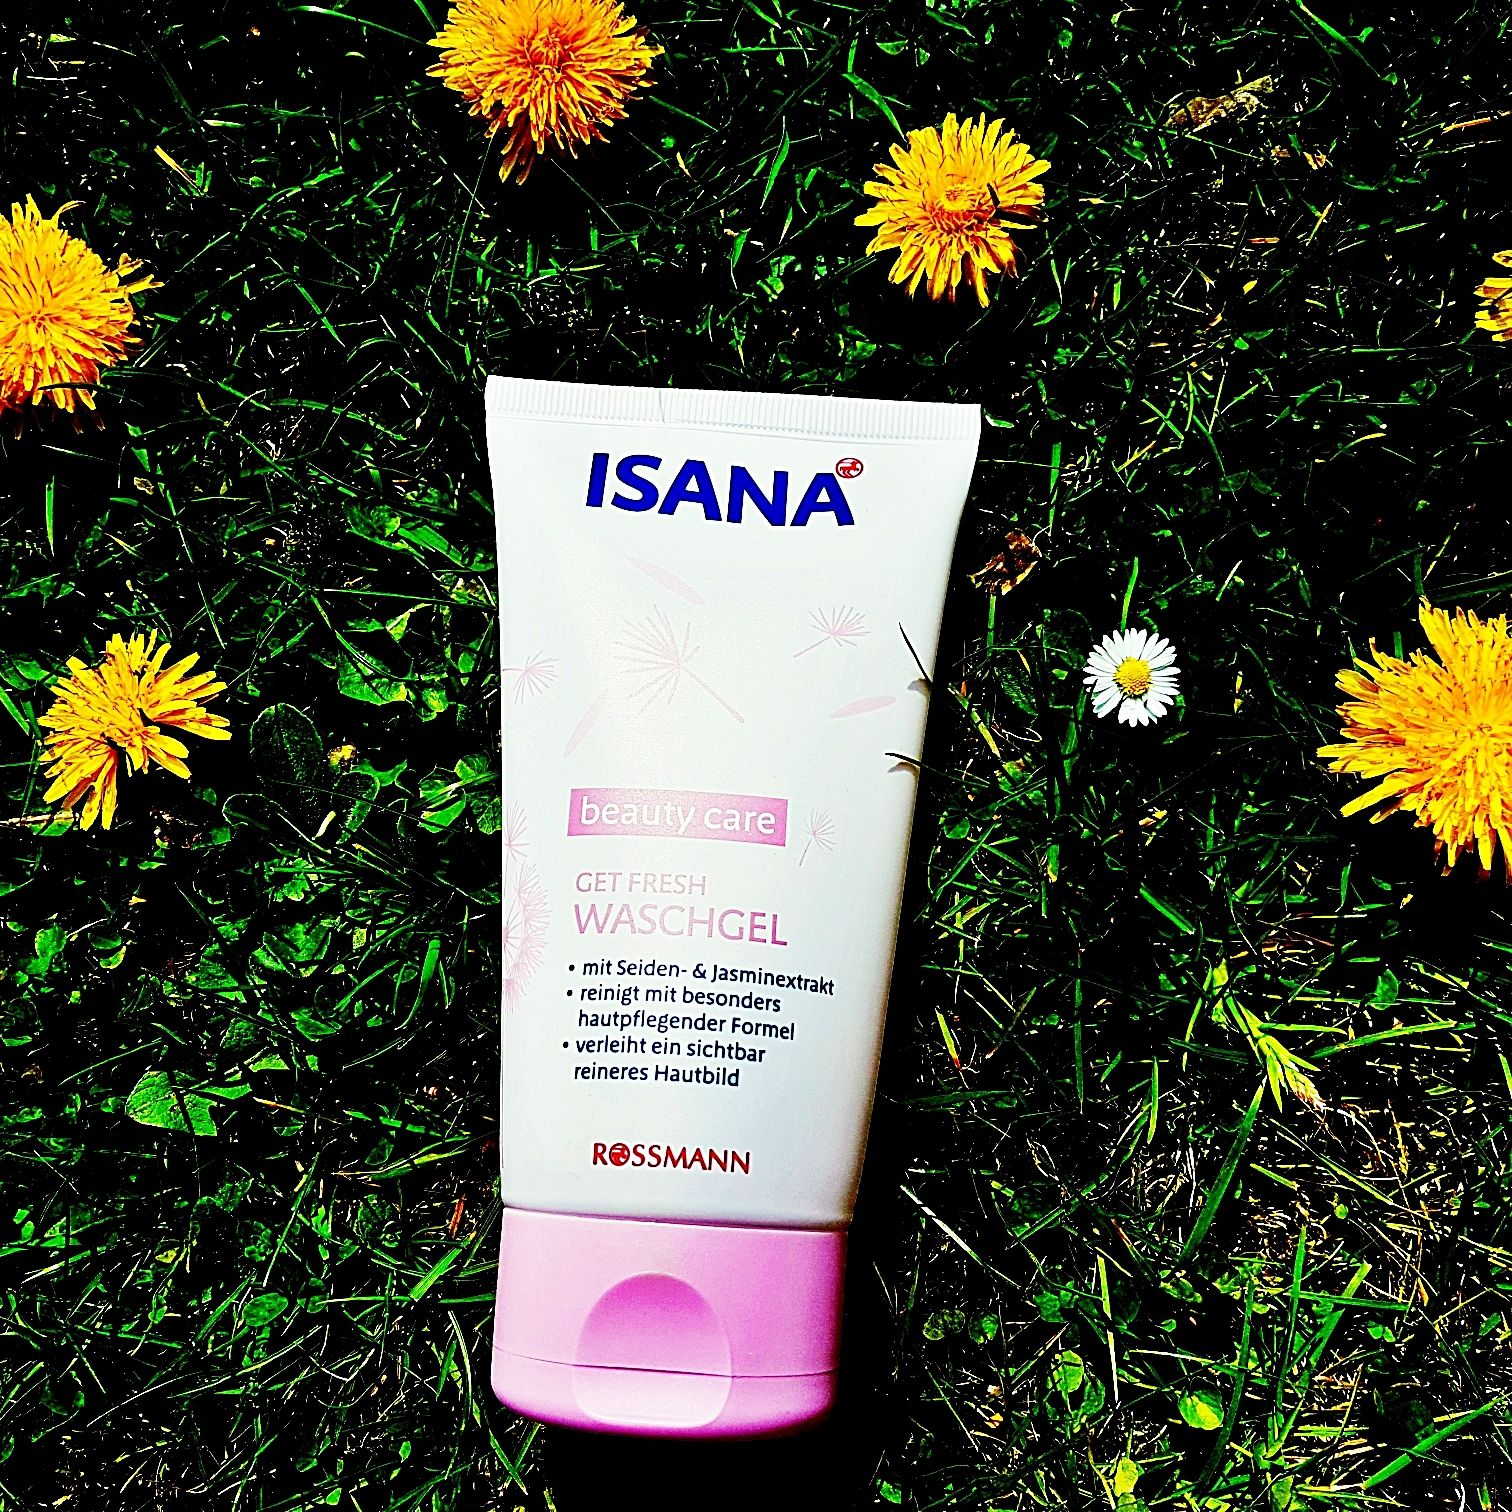 Isana beauty care Get Fresh Waschgel